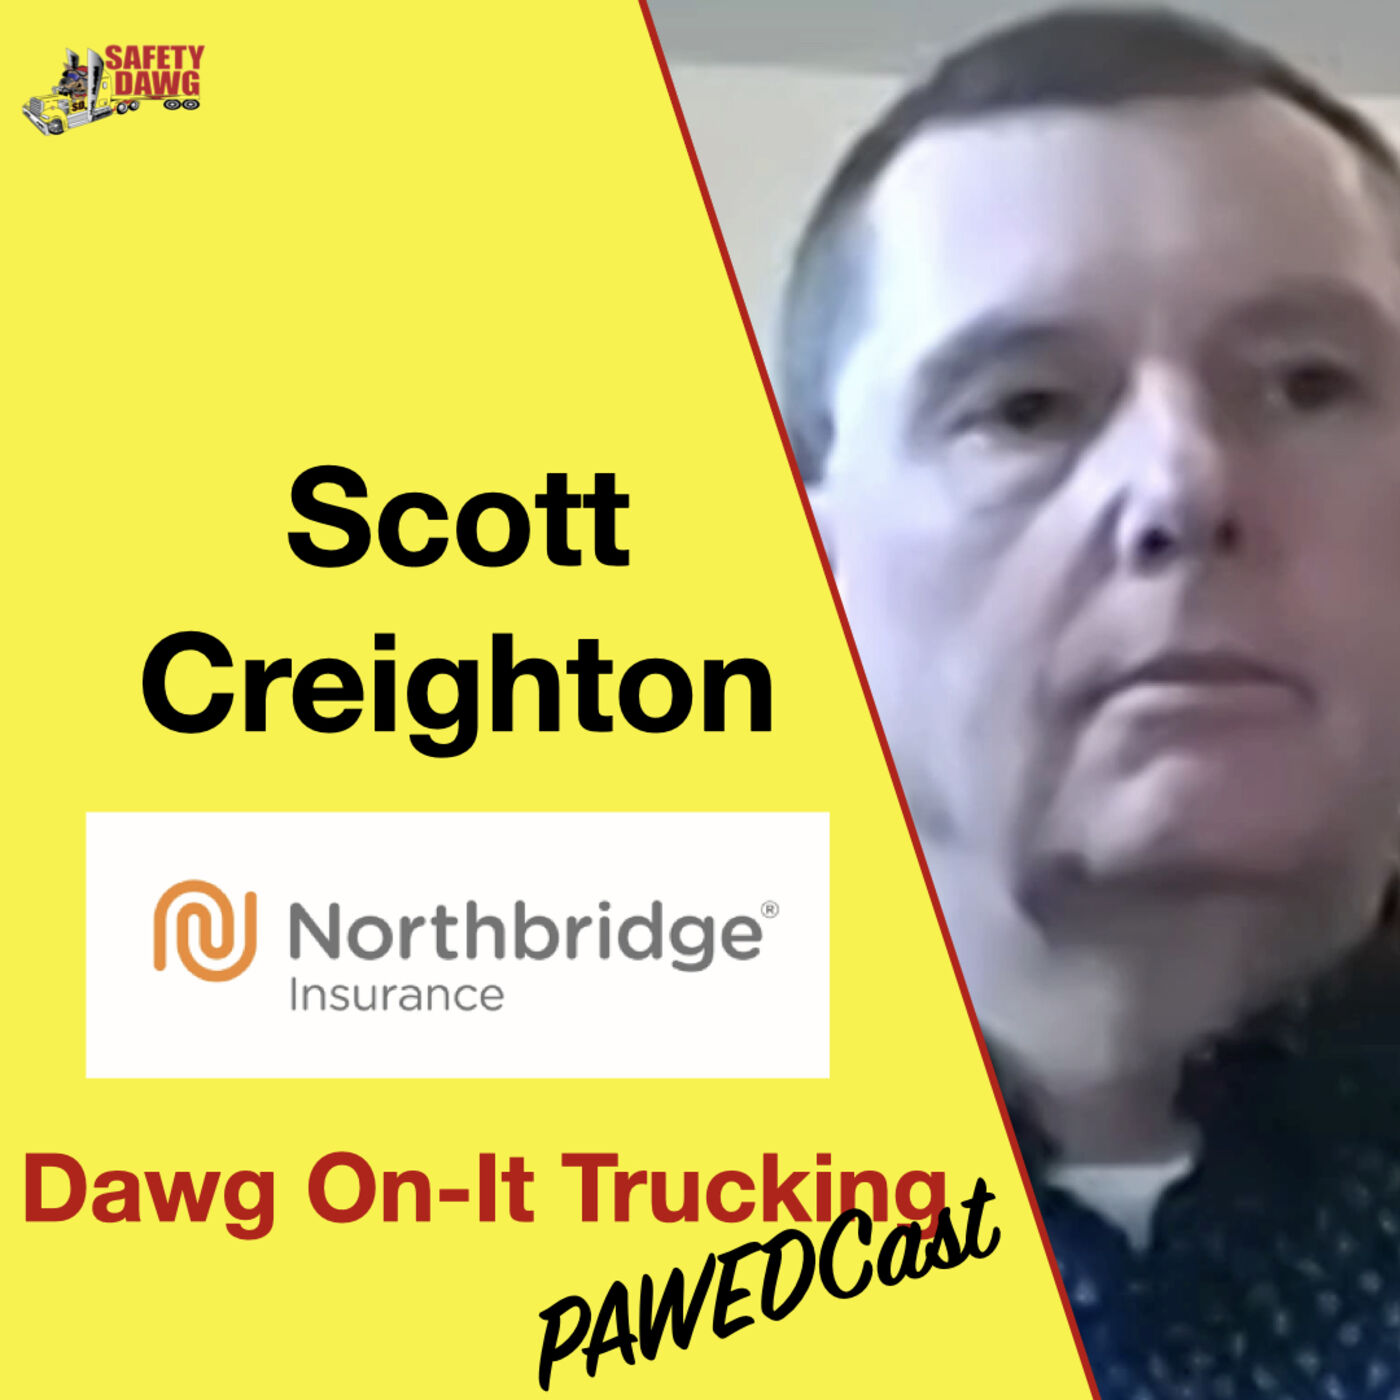 15. Safety Trucking Insurance People & What To Expect on the Dawg On-It Trucking Pawedcast